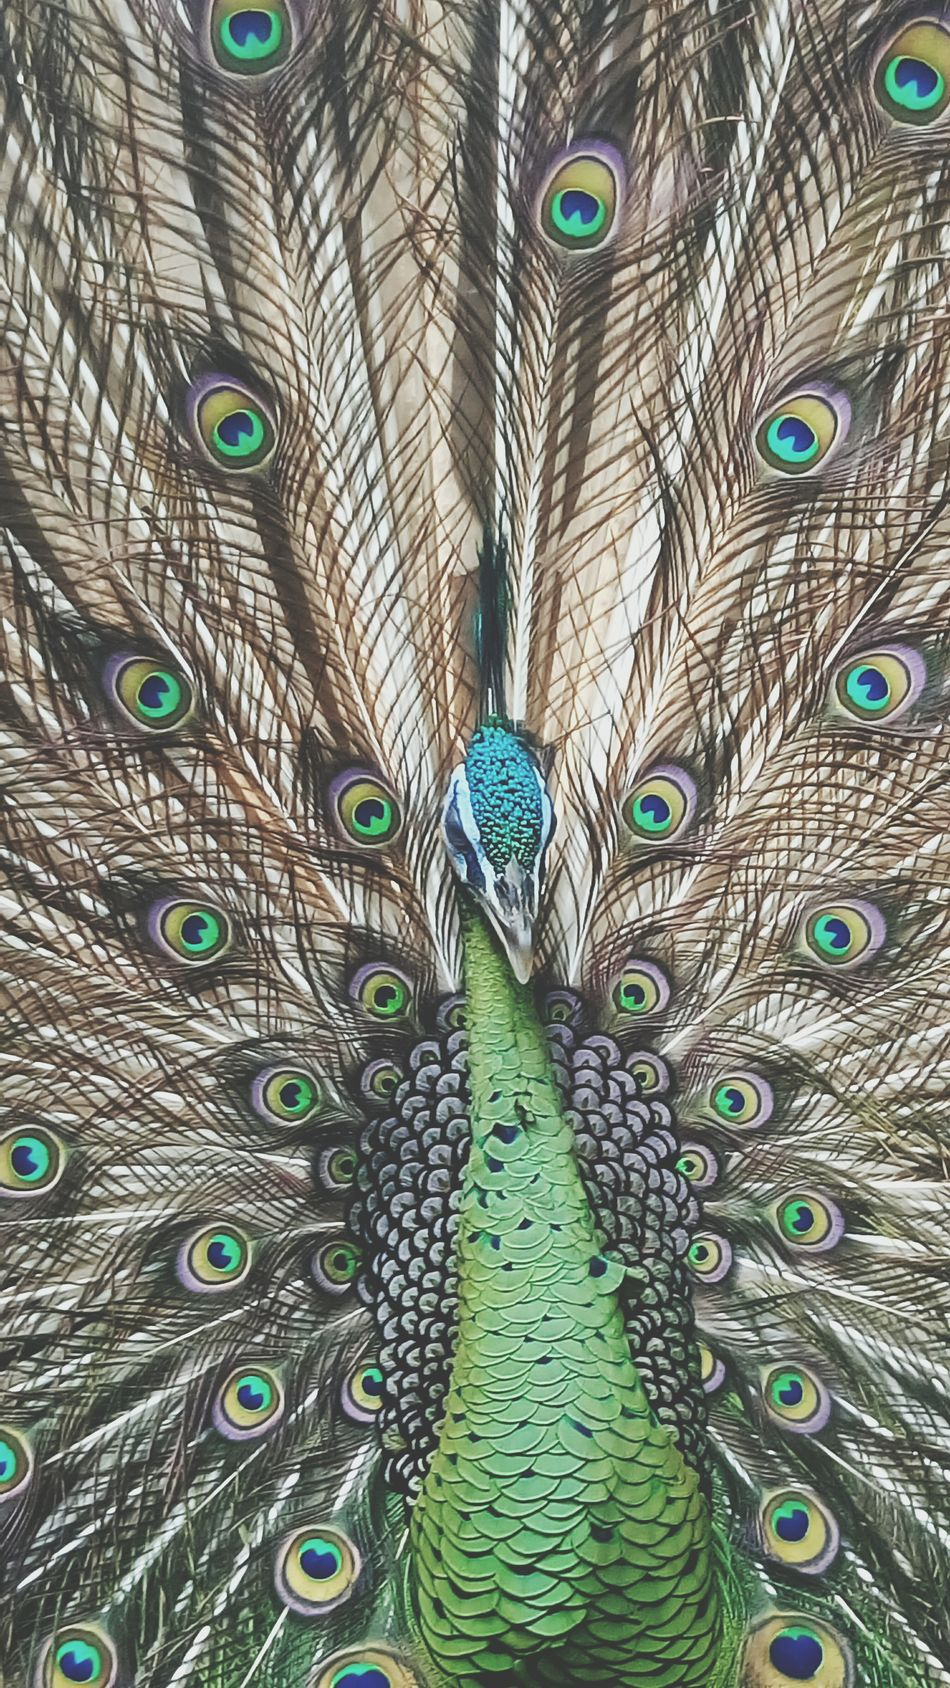 Beautiful stock photos of peacock, Avian, animal Themes, backgrounds, blue